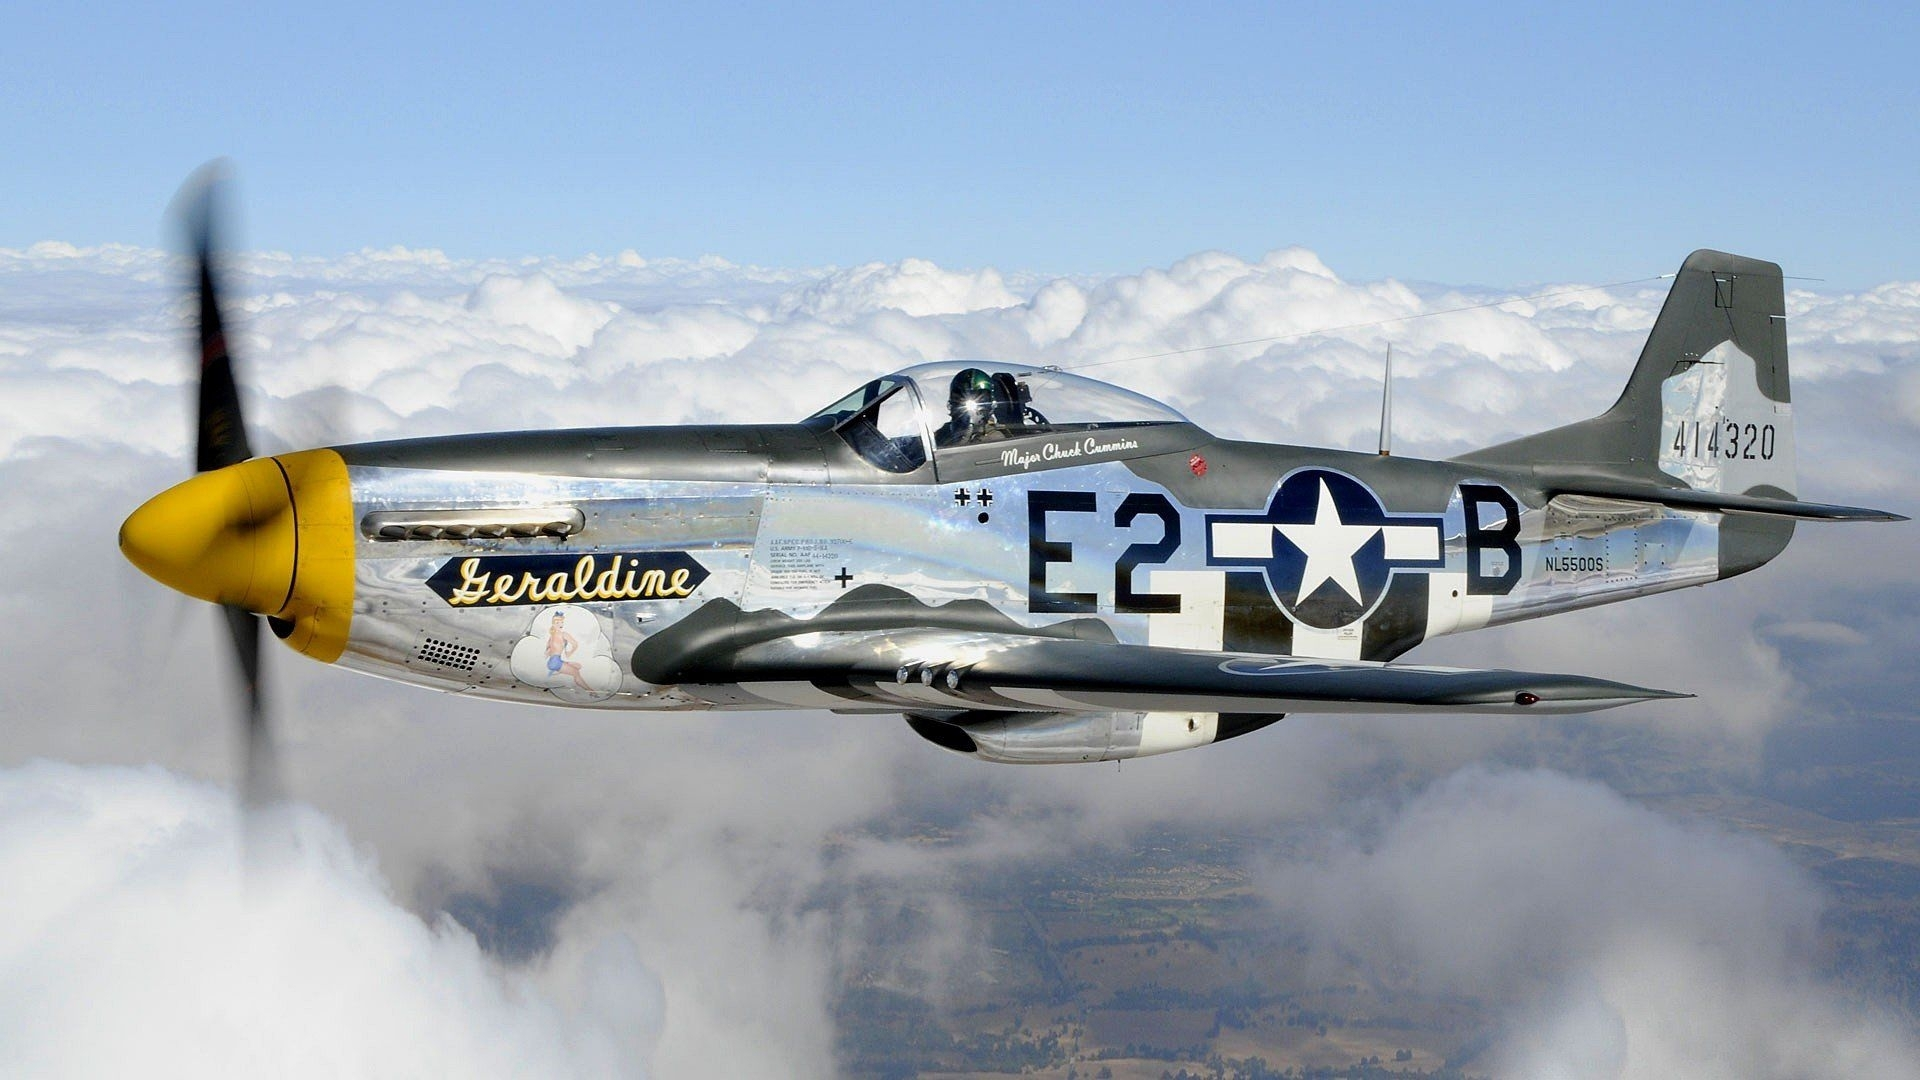 aircraft warbird p-51 mustang wallpaper | 1920x1080 | 251972